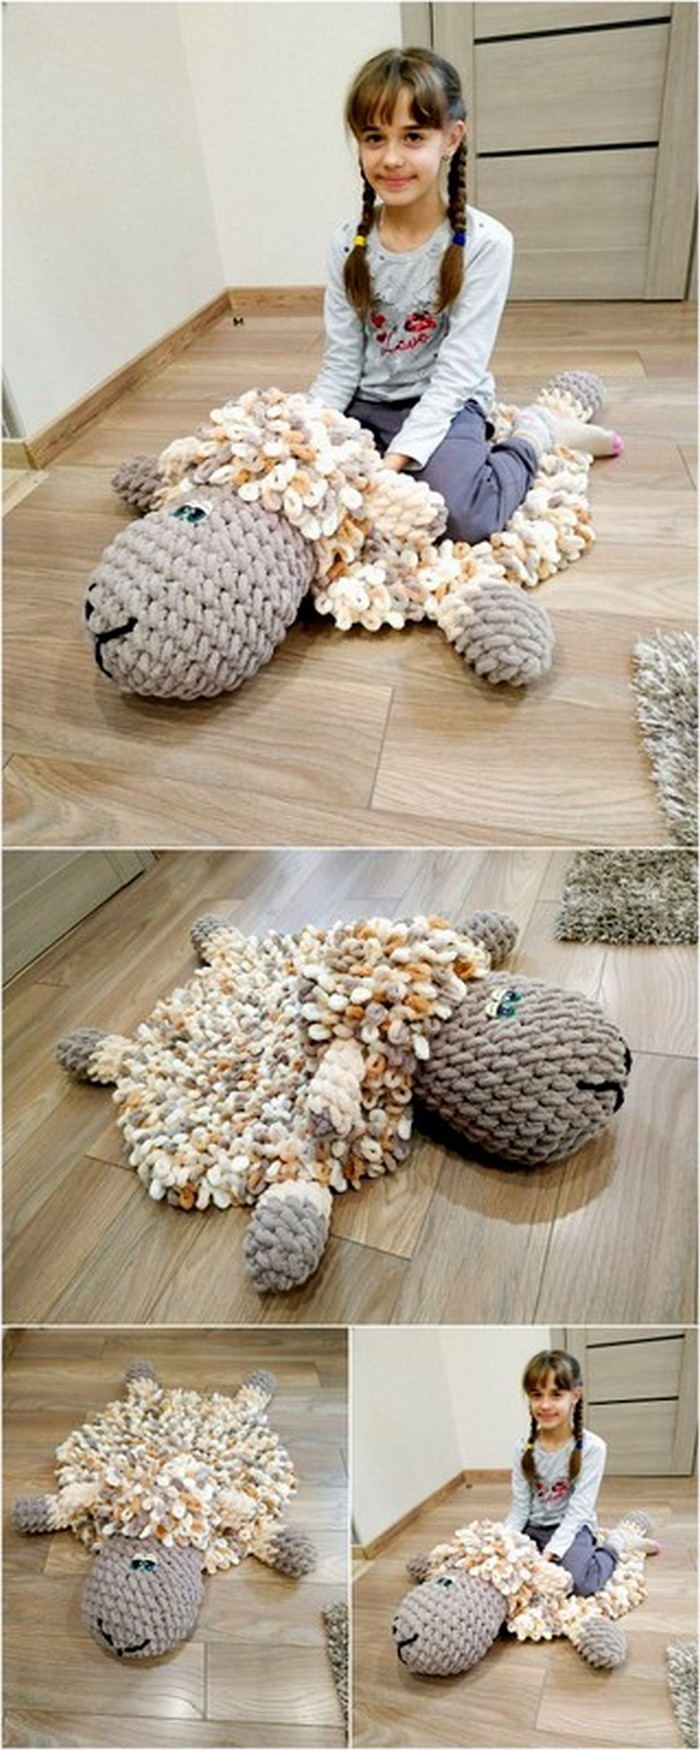 incredible crochet project for kids